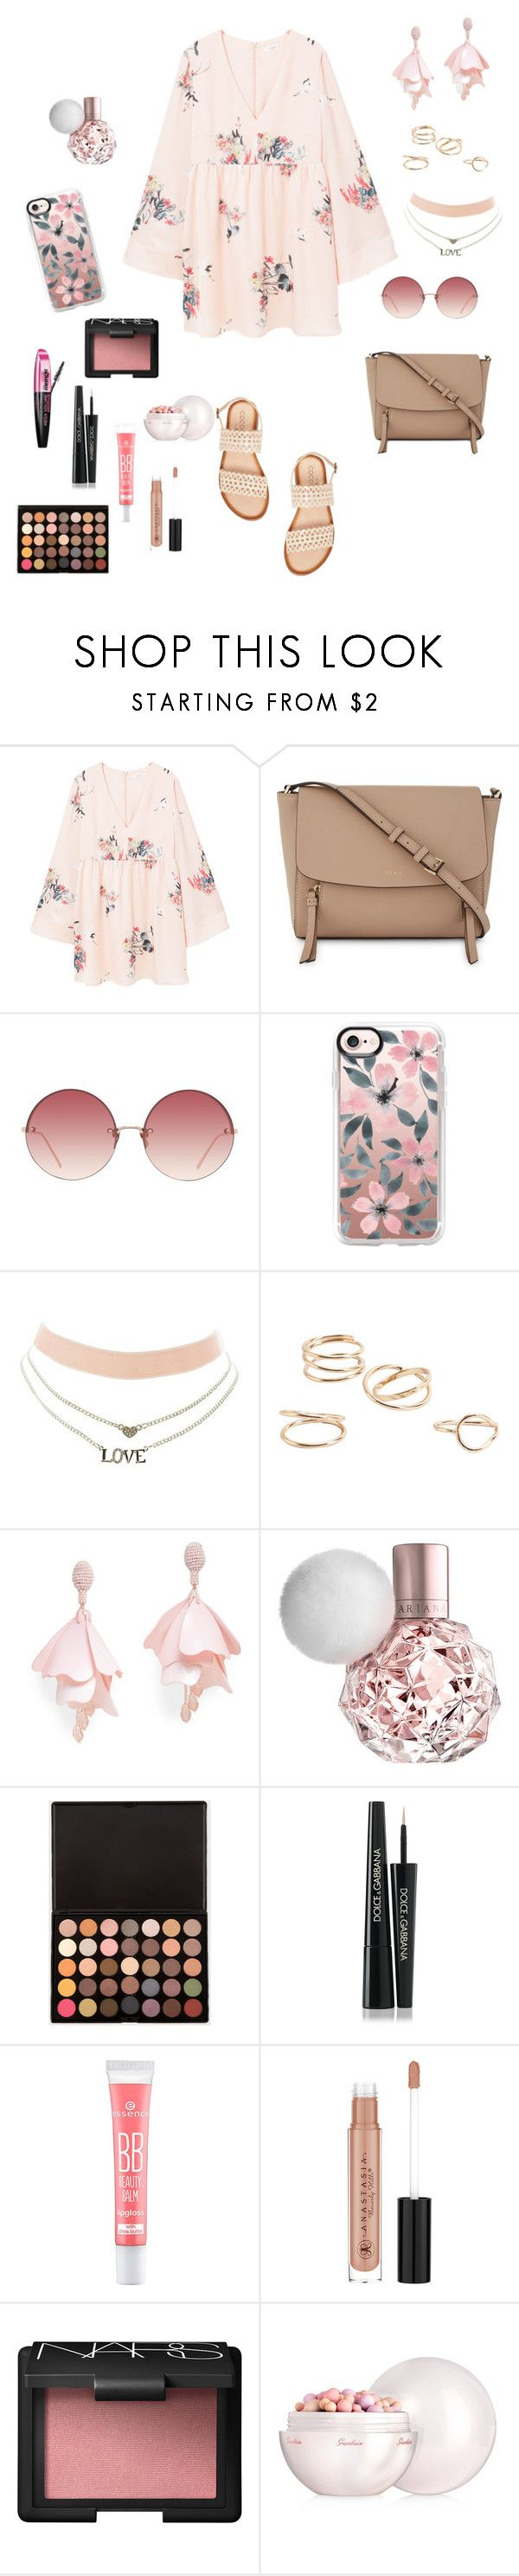 """""""Untitled #270"""" by natalyholly on Polyvore featuring MANGO, DKNY, Linda Farrow, Casetify, Charlotte Russe, Oscar de la Renta Pink Label, L'Oréal Paris, Dolce&Gabbana, Anastasia Beverly Hills and NARS Cosmetics"""